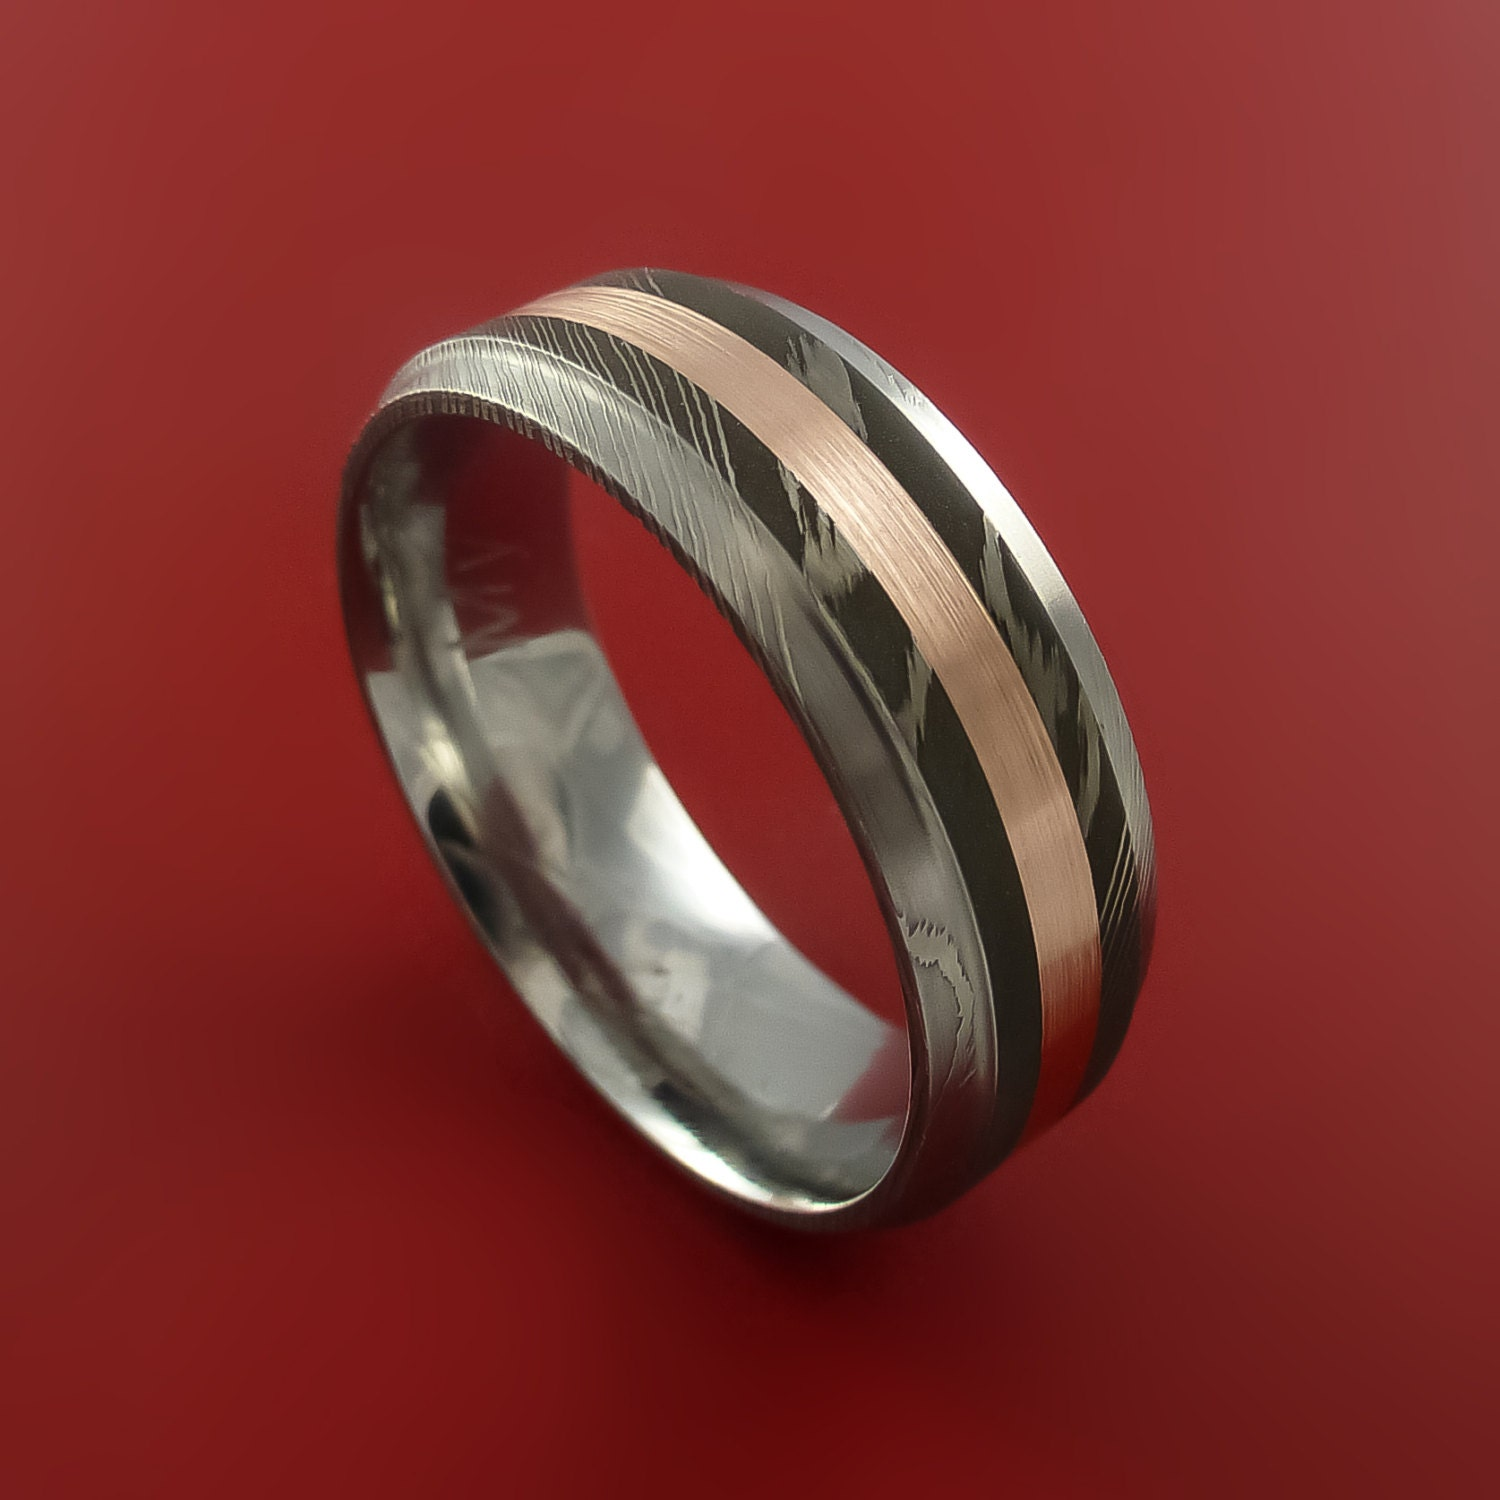 Damascus Steel 14k Rose Gold Ring Wedding Band Any Size 3 22